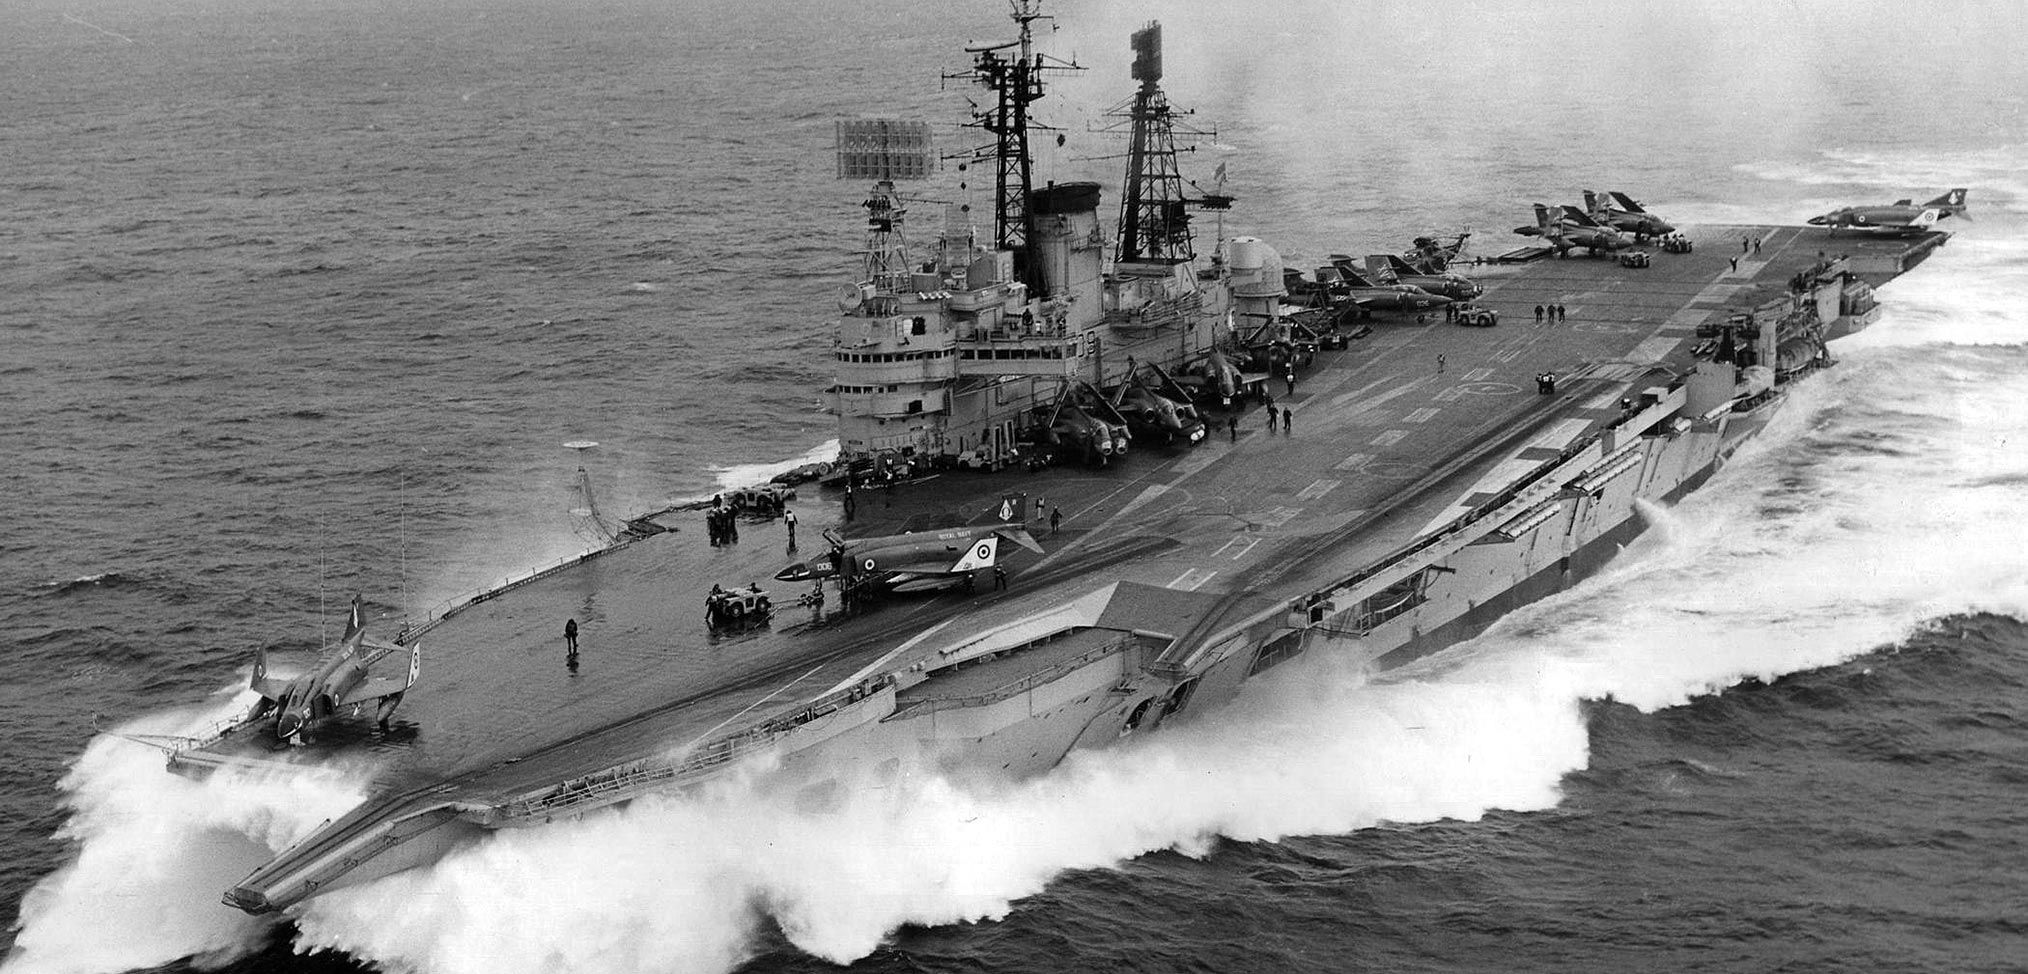 Air power from the sea – the case for aircraft carriers